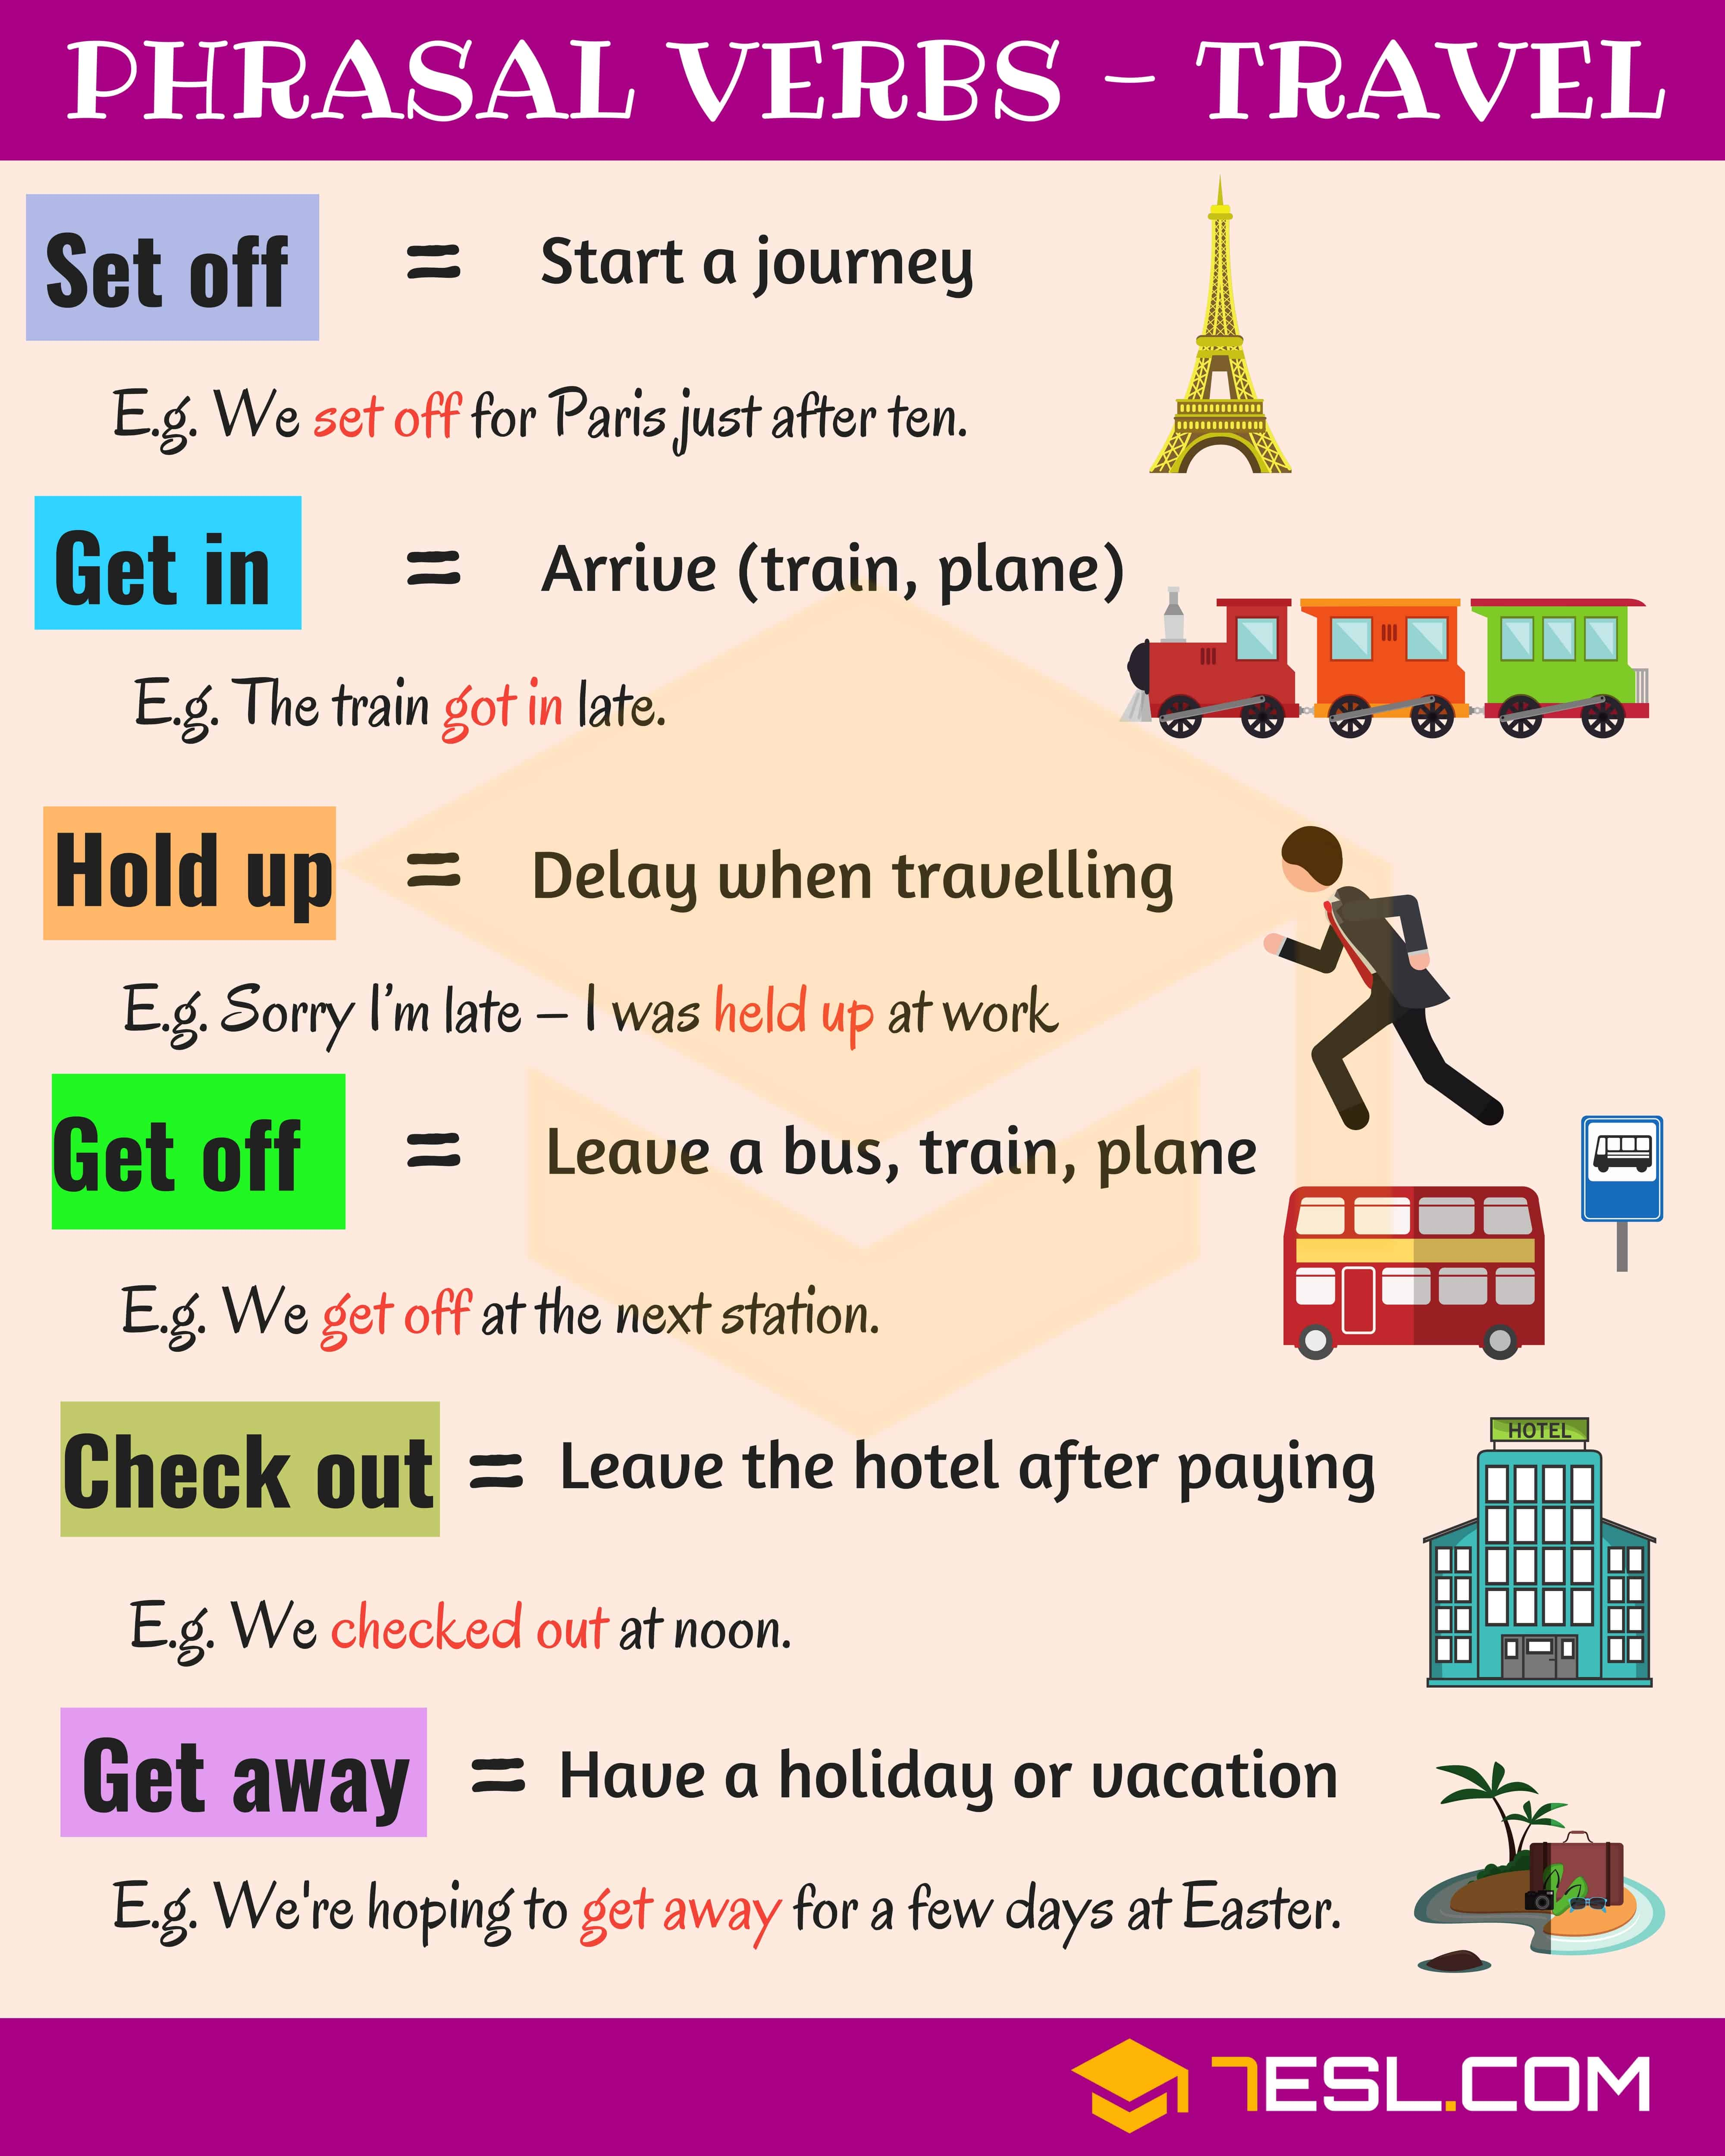 19 Useful Phrasal Verbs For Travel In English